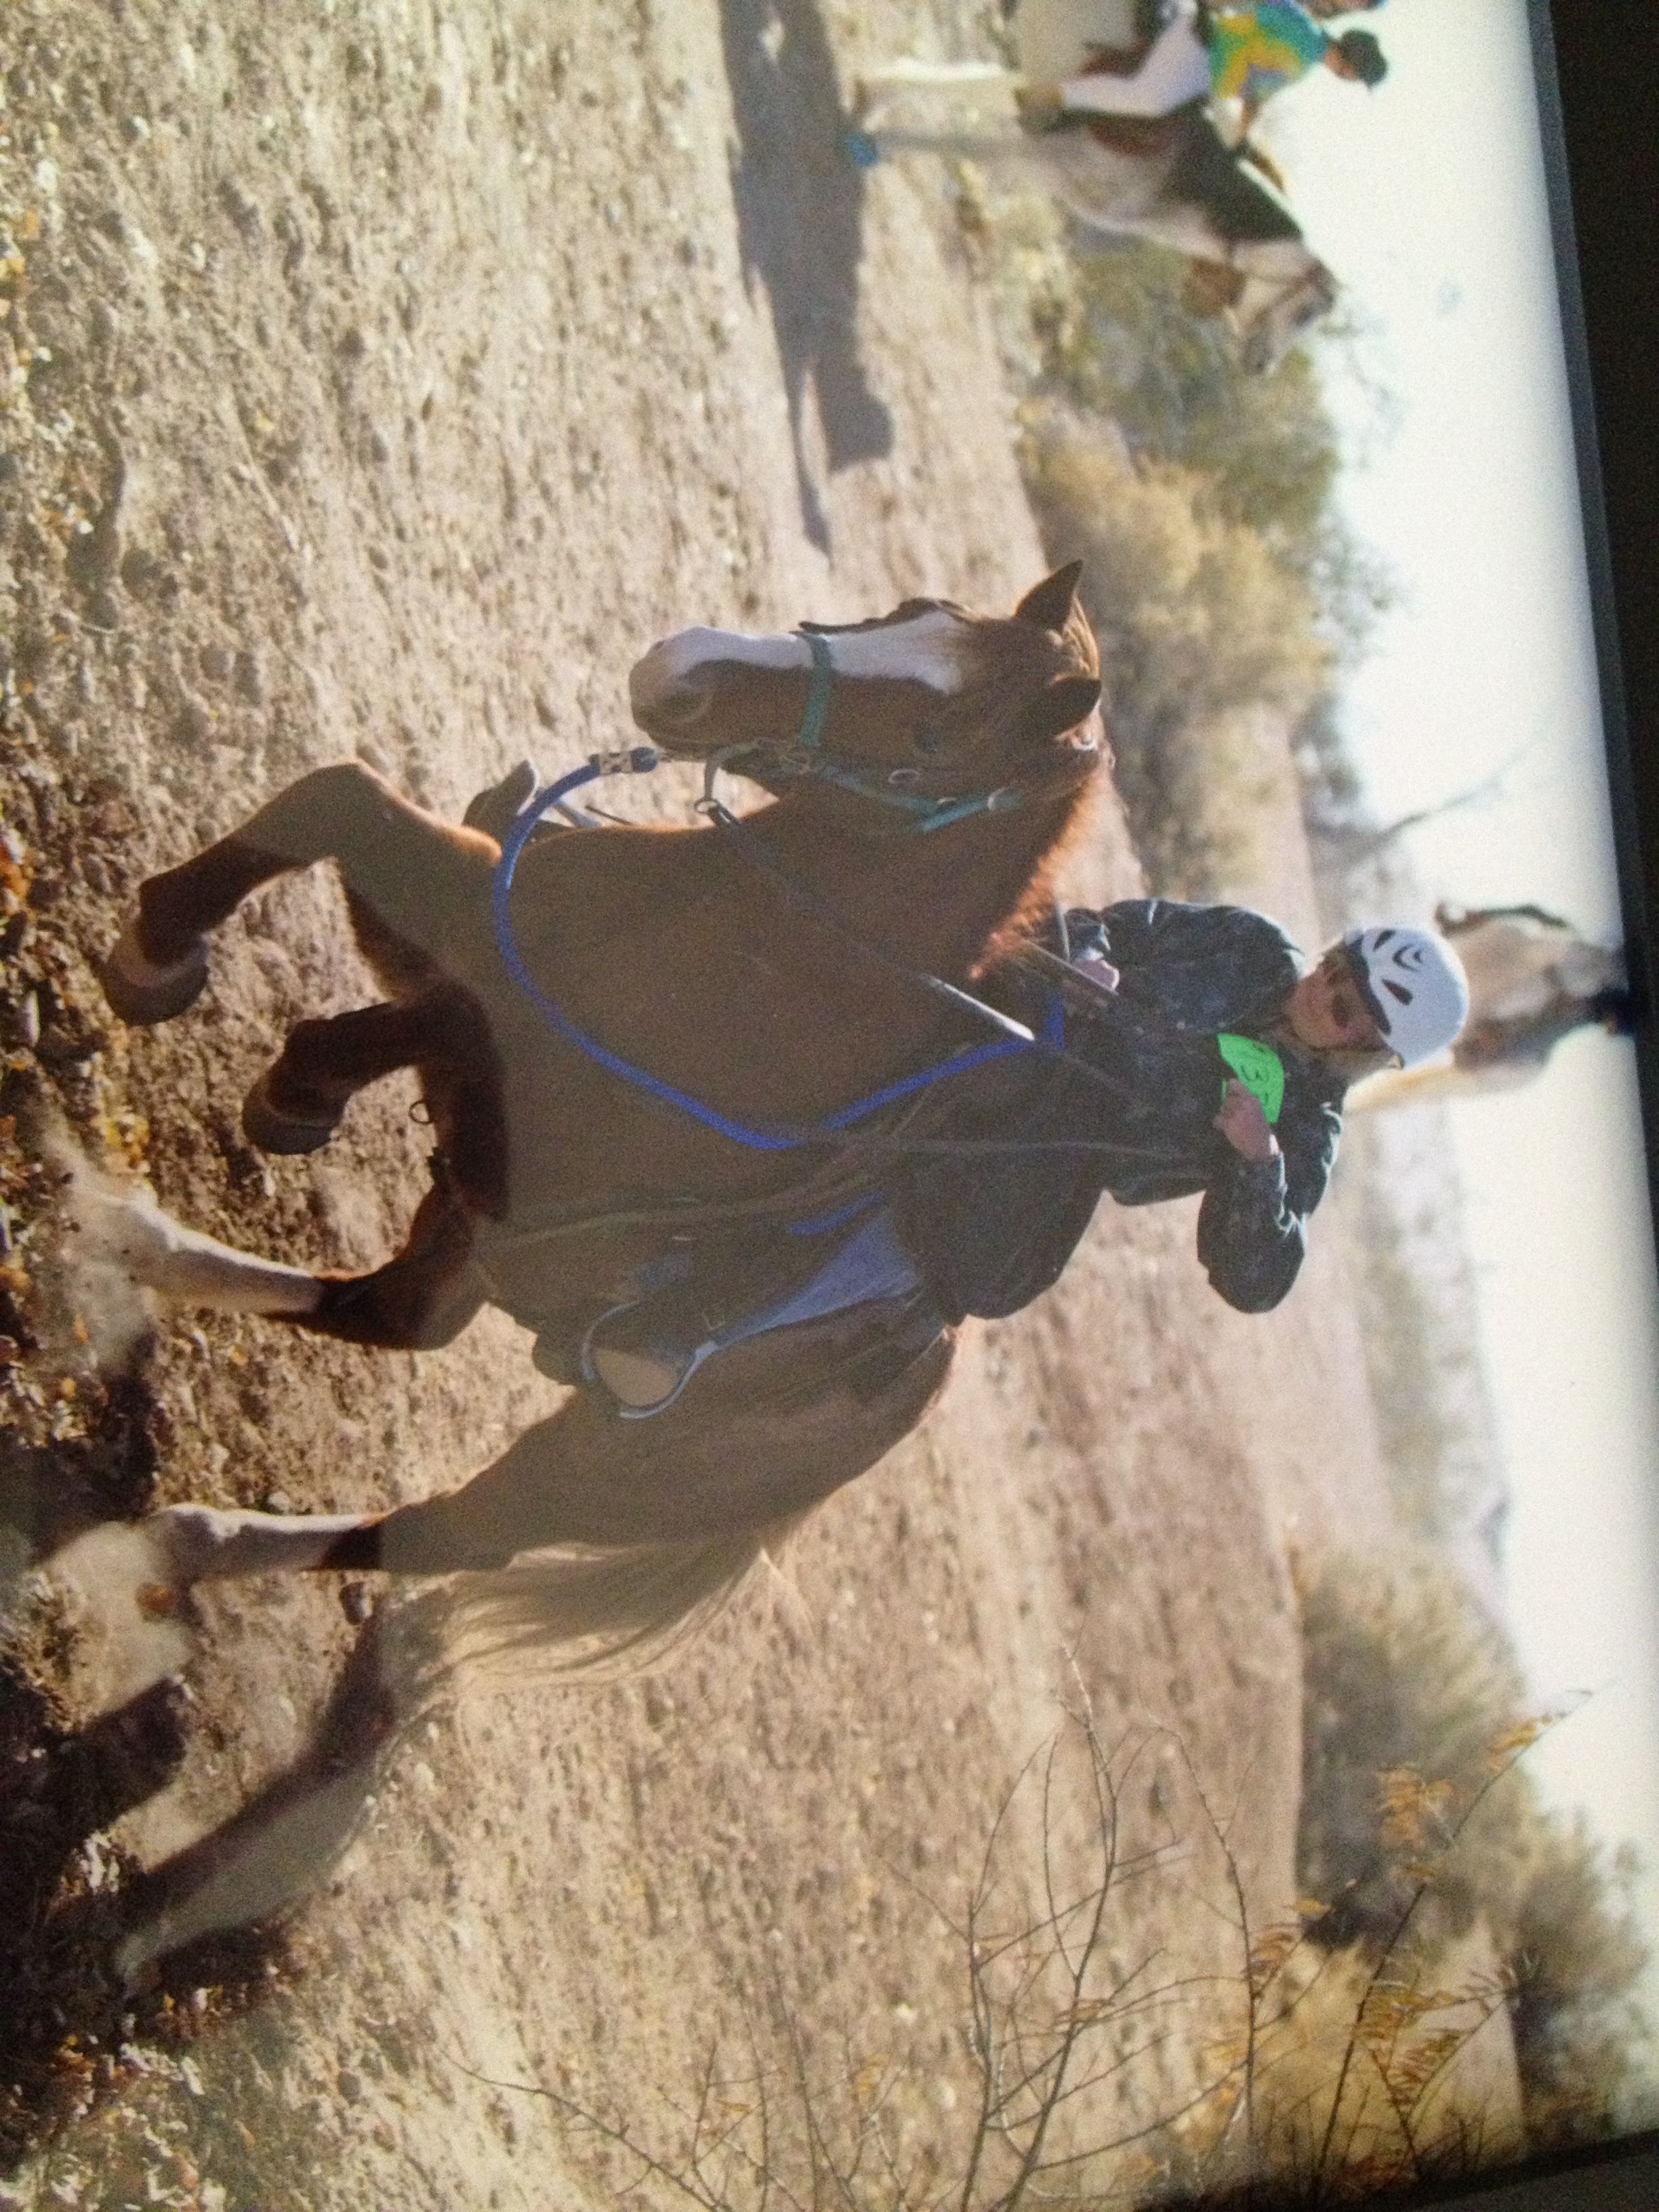 #ActionRider Helen Josey, tearing up the trails! #trailriding #horseriding #horses #barnlife